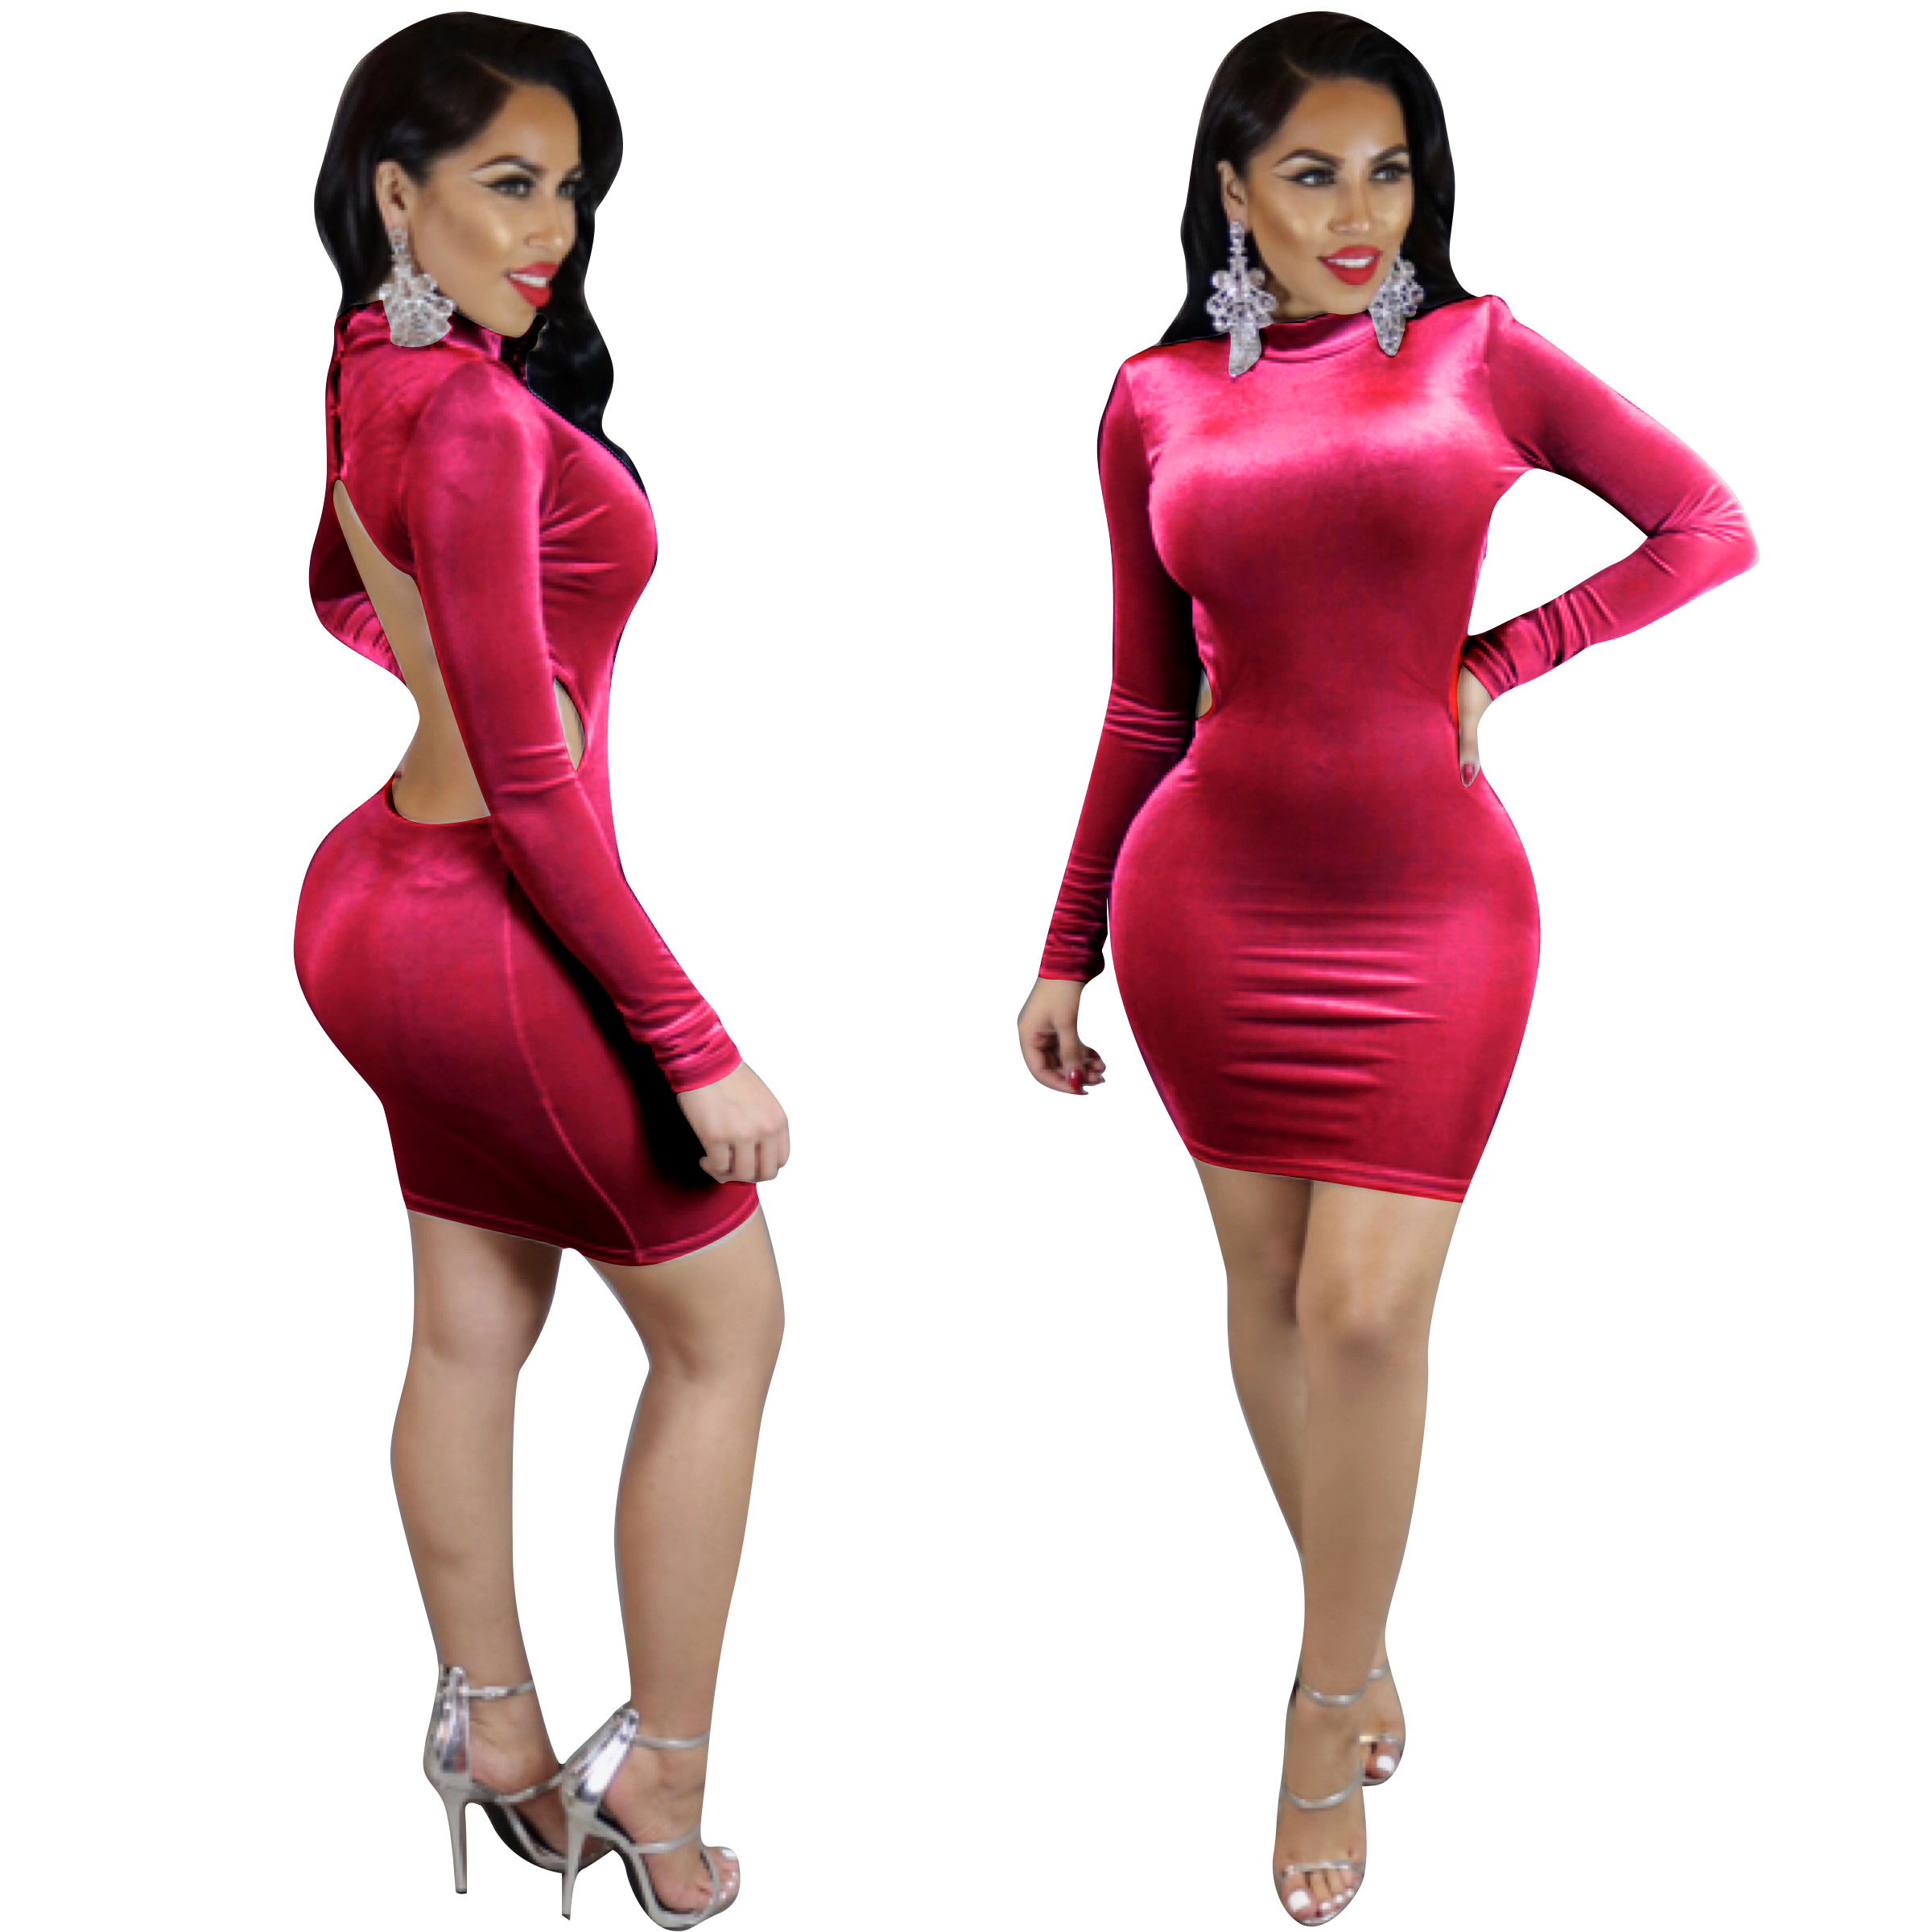 fab1c807aec5 US$ 5.11 - Watermelon Red High Neck Backless Long Sleeve Bodycon Dress  24558-5 - www.global-lover.com